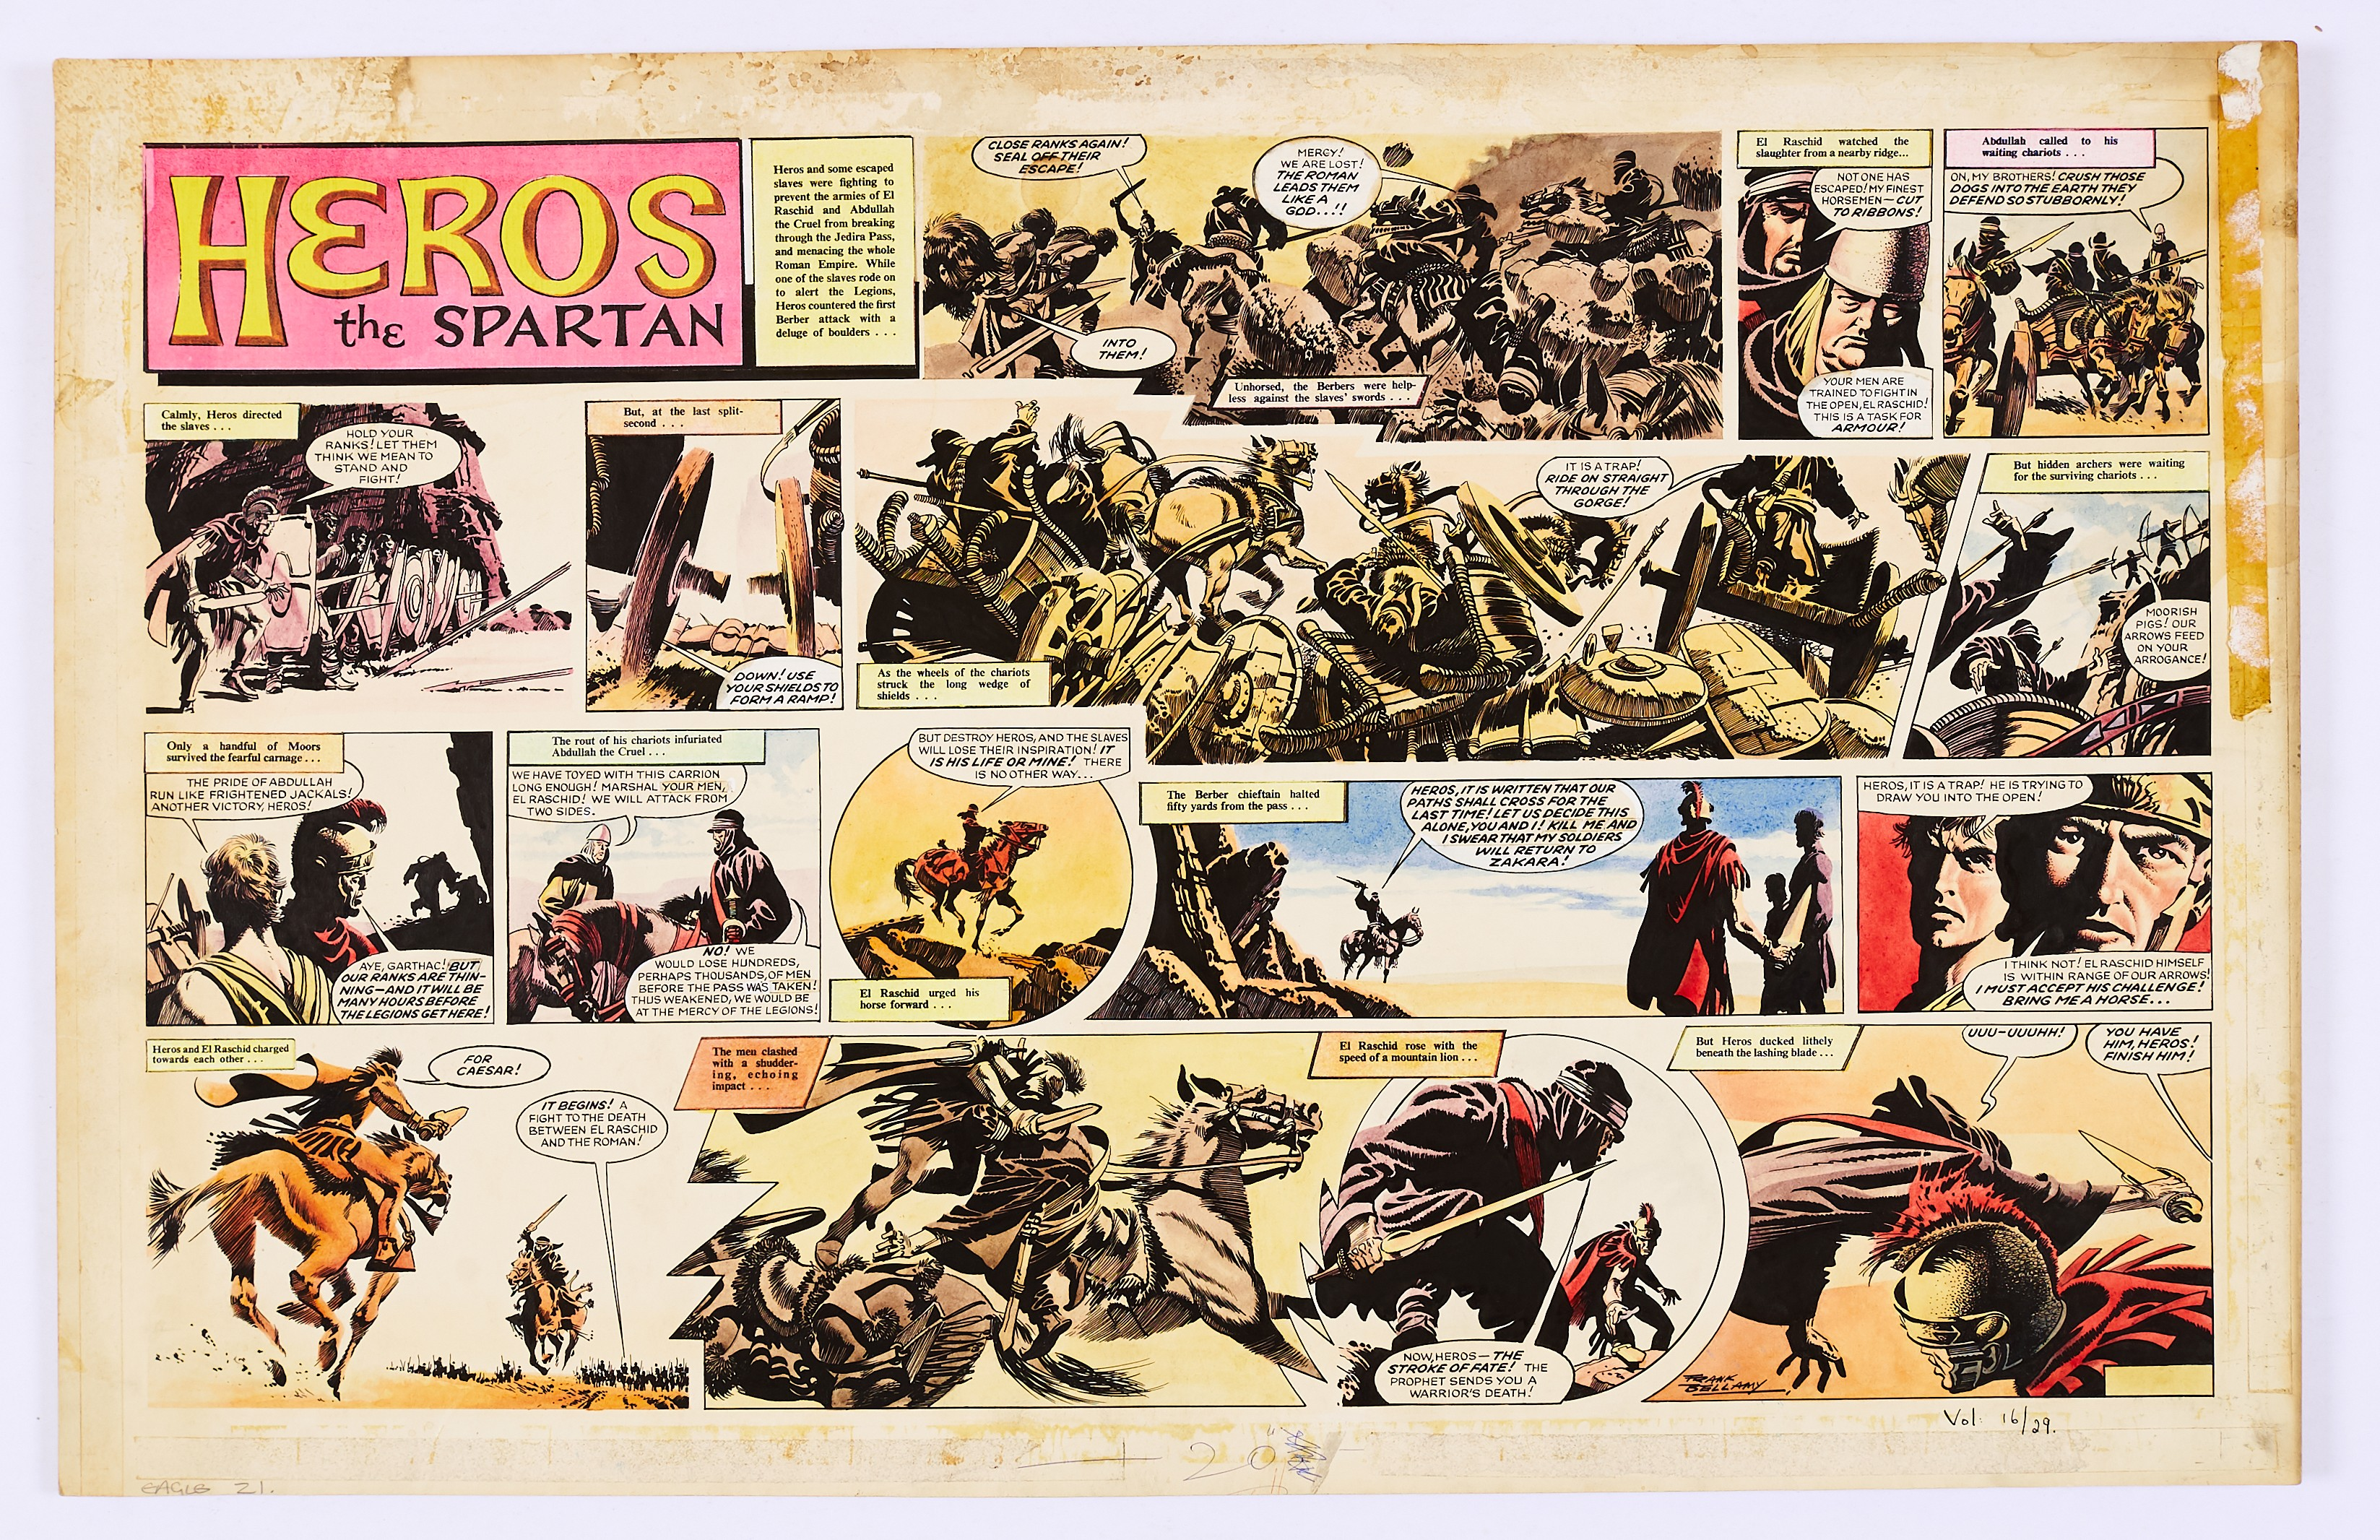 Lot 97 - Heros The Spartan double-page original artwork (1965) painted and signed by Frank Bellamy from The